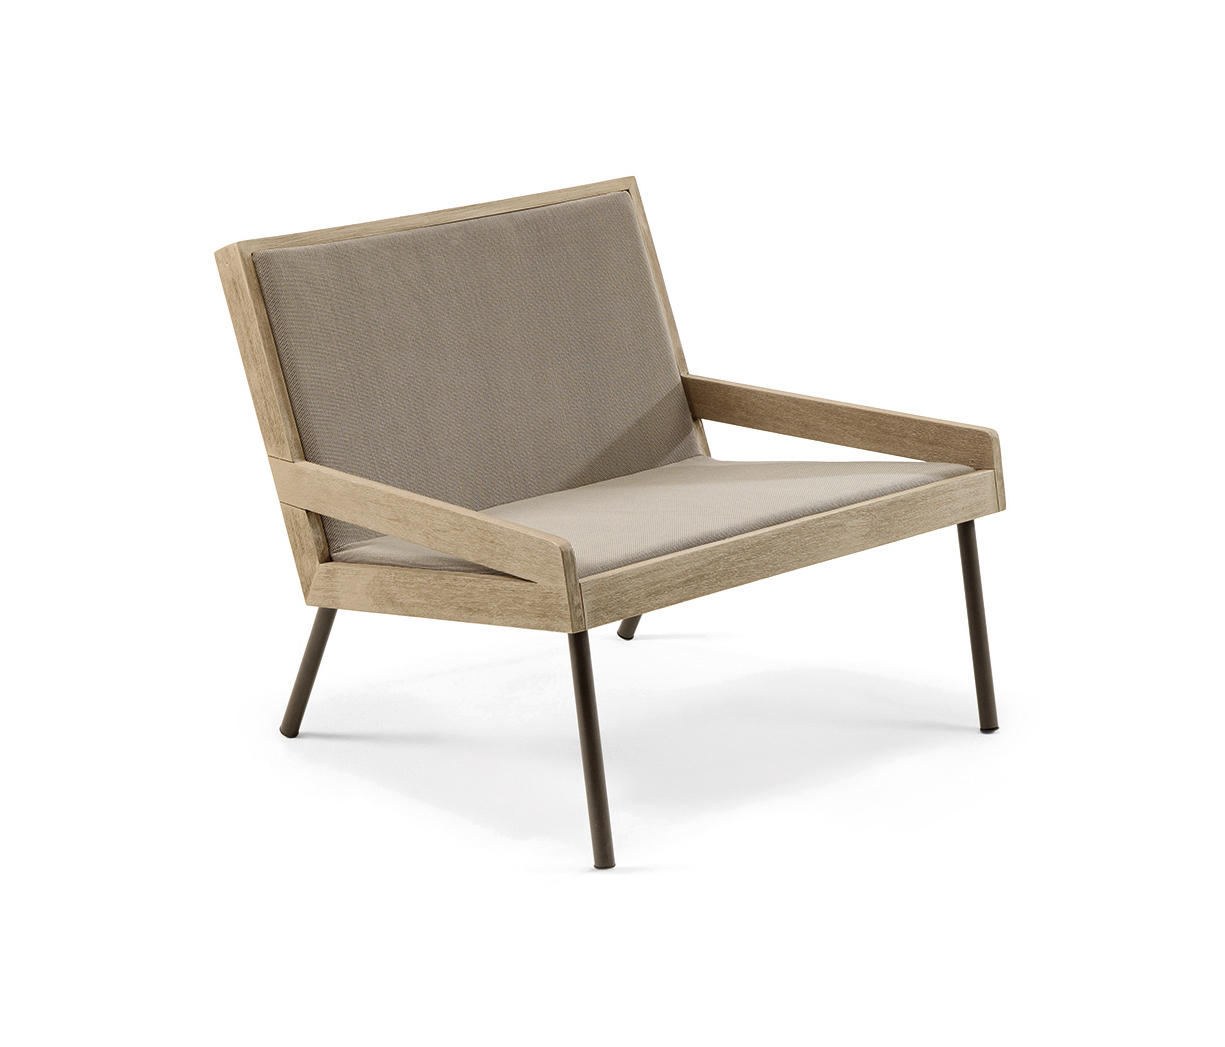 Ordinaire Allaperto Urban Lounge Armchair By Ethimo | Armchairs